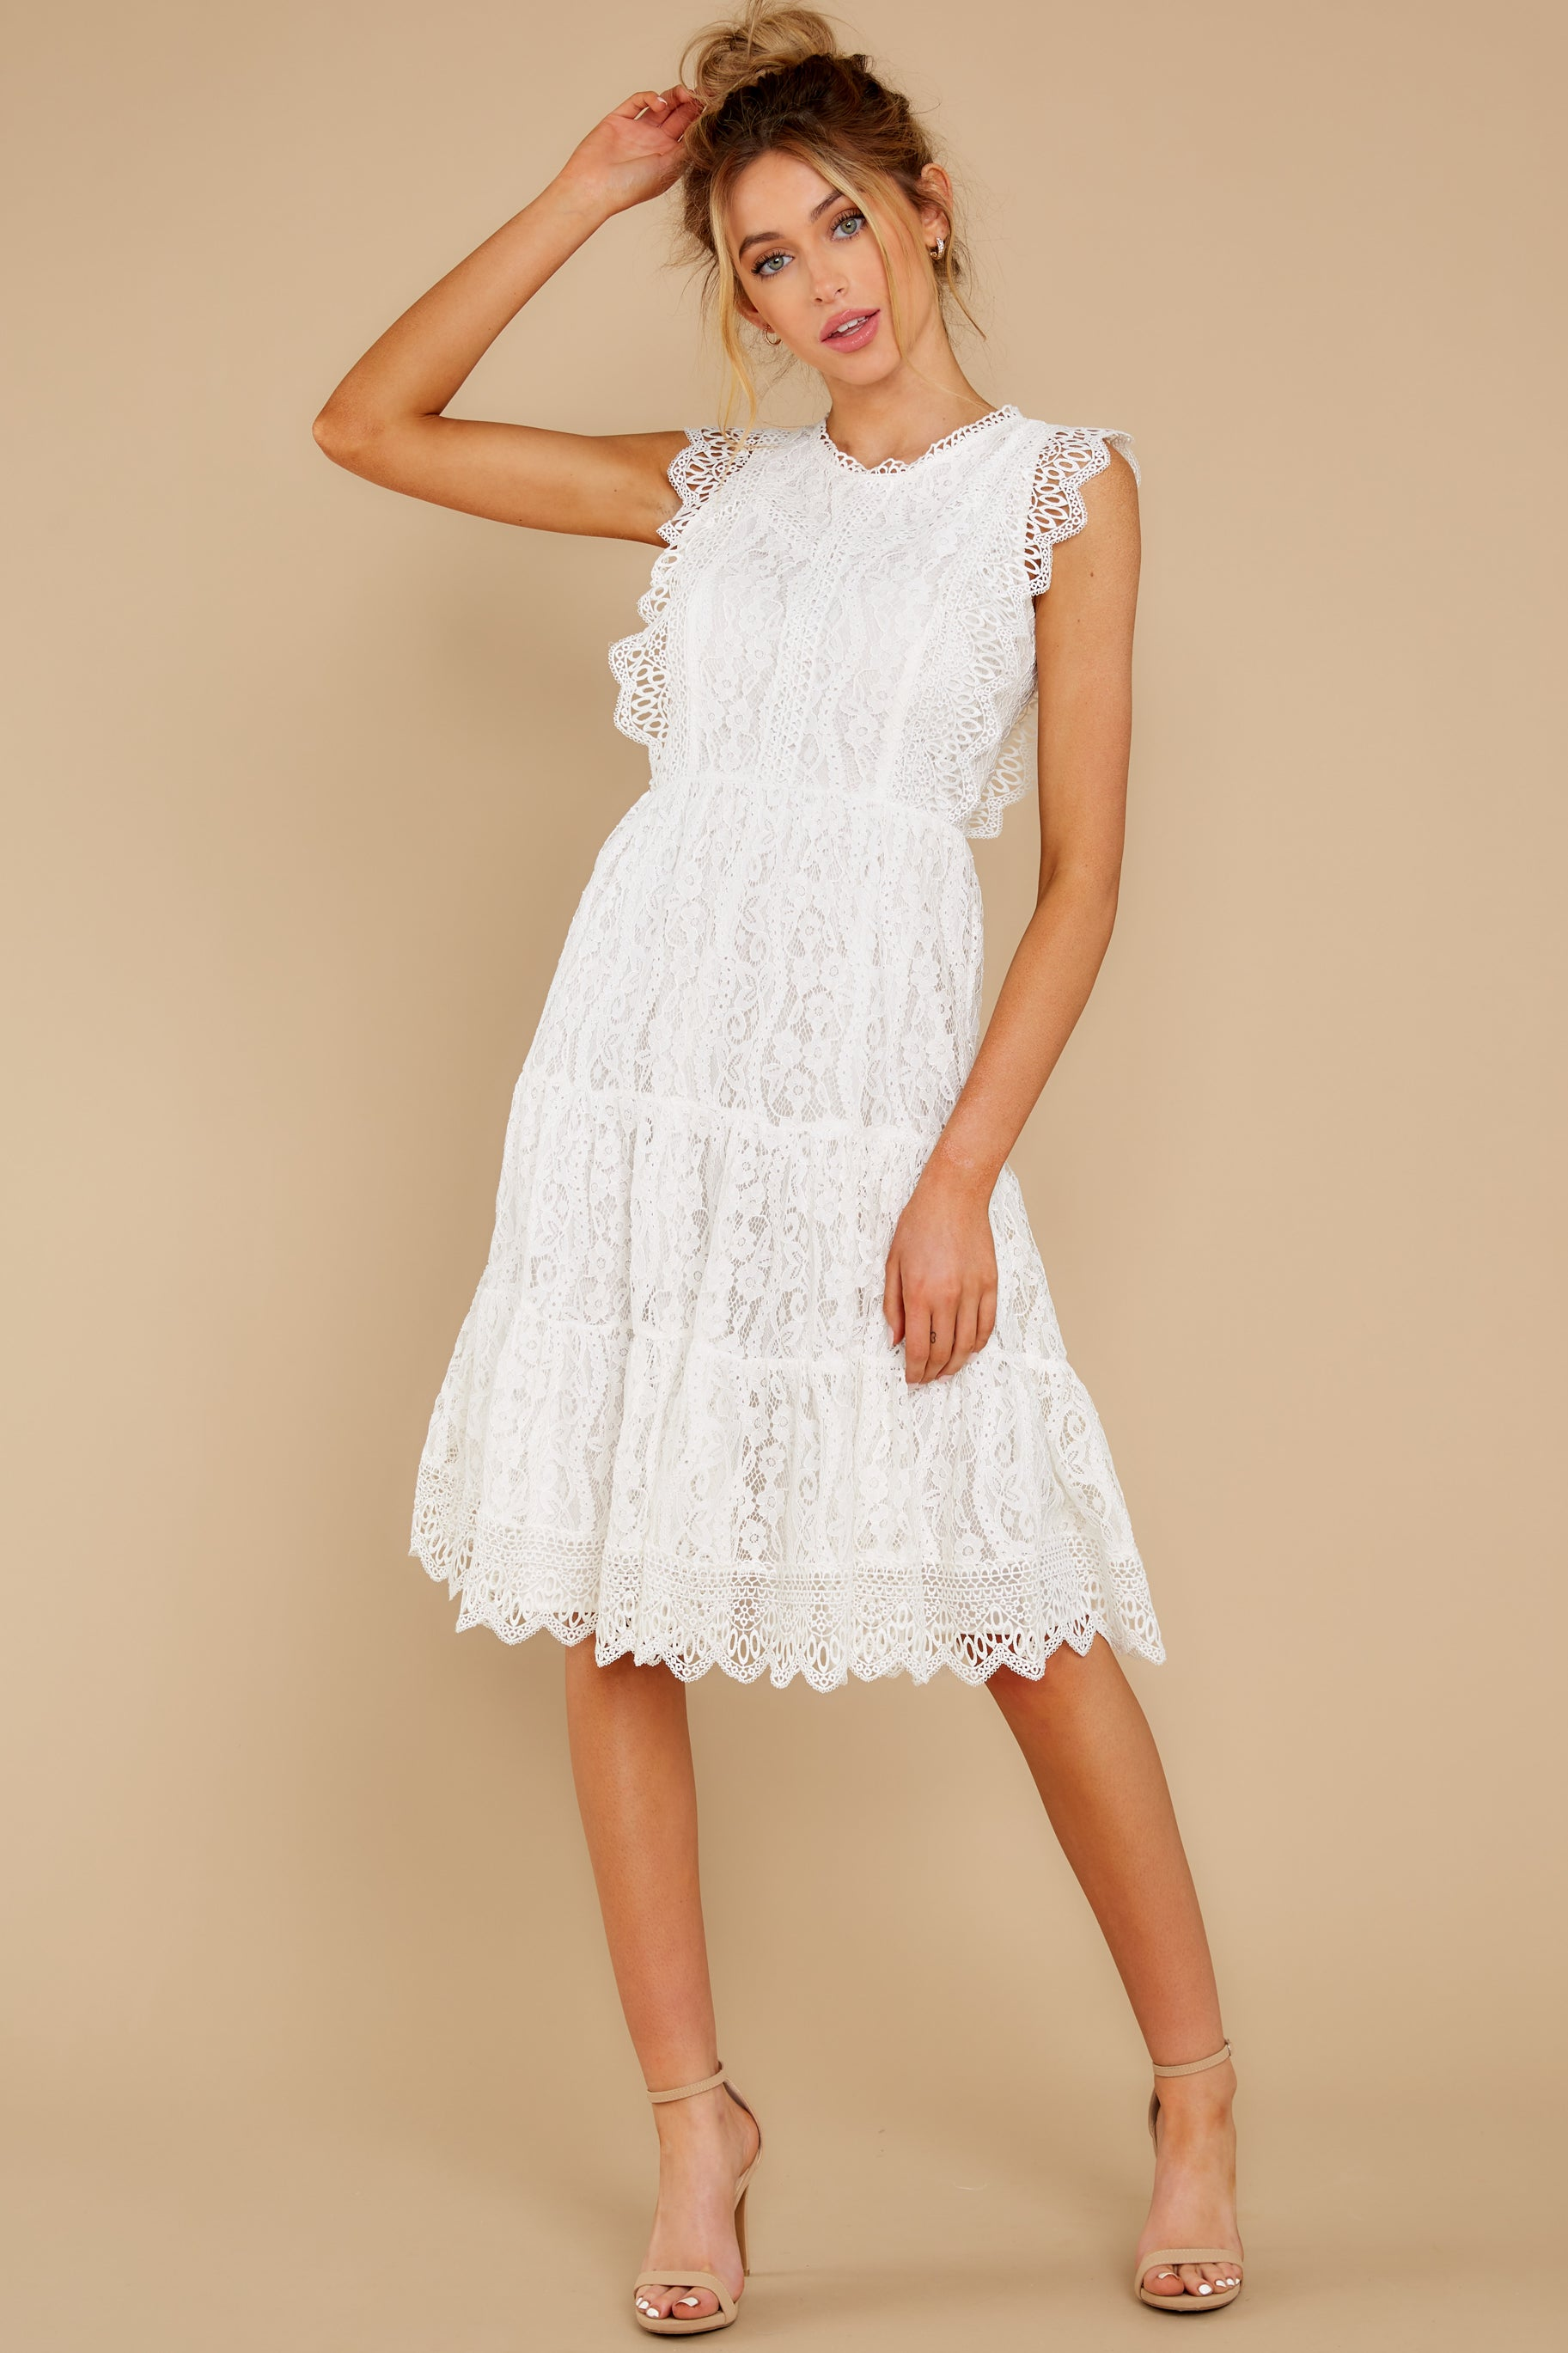 2 Simply Amazing White Lace Dress at reddress.com